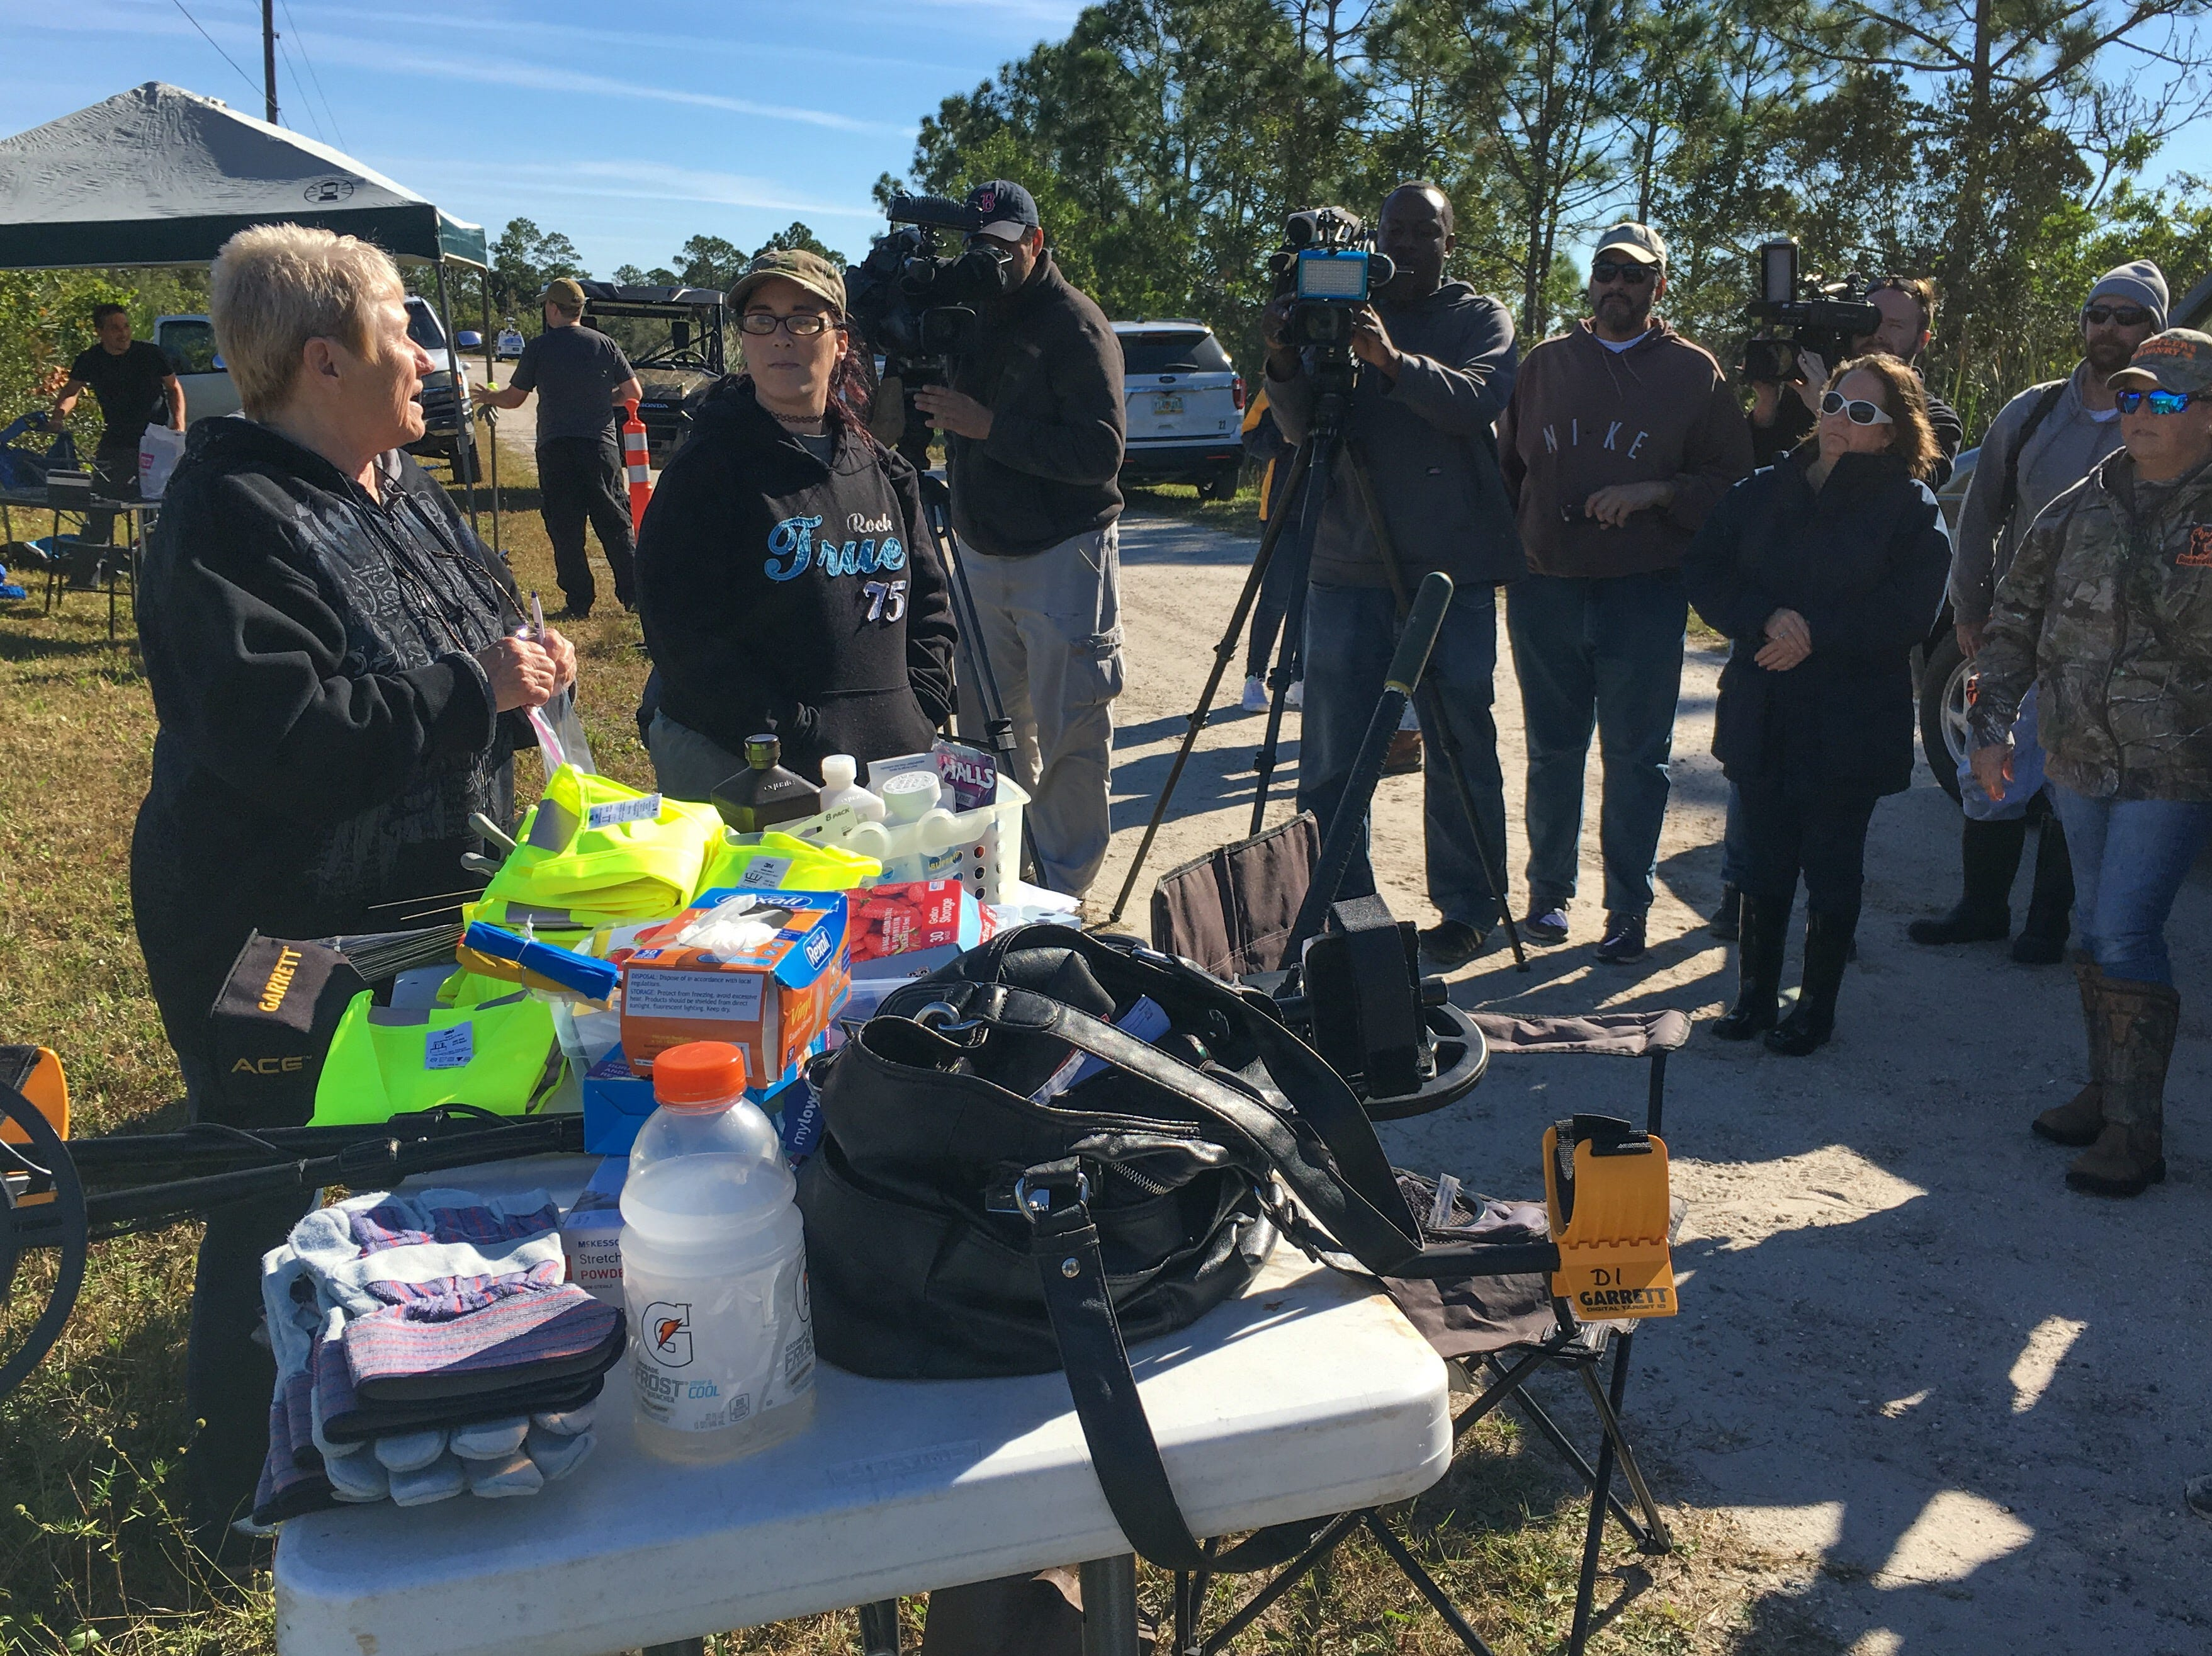 A search for Brandy Hall's remains was underway Dec. 5, 2018, in the Palm Bay woods and wetlands. Hall, a volunteer firefighter, disappeared in 2006.